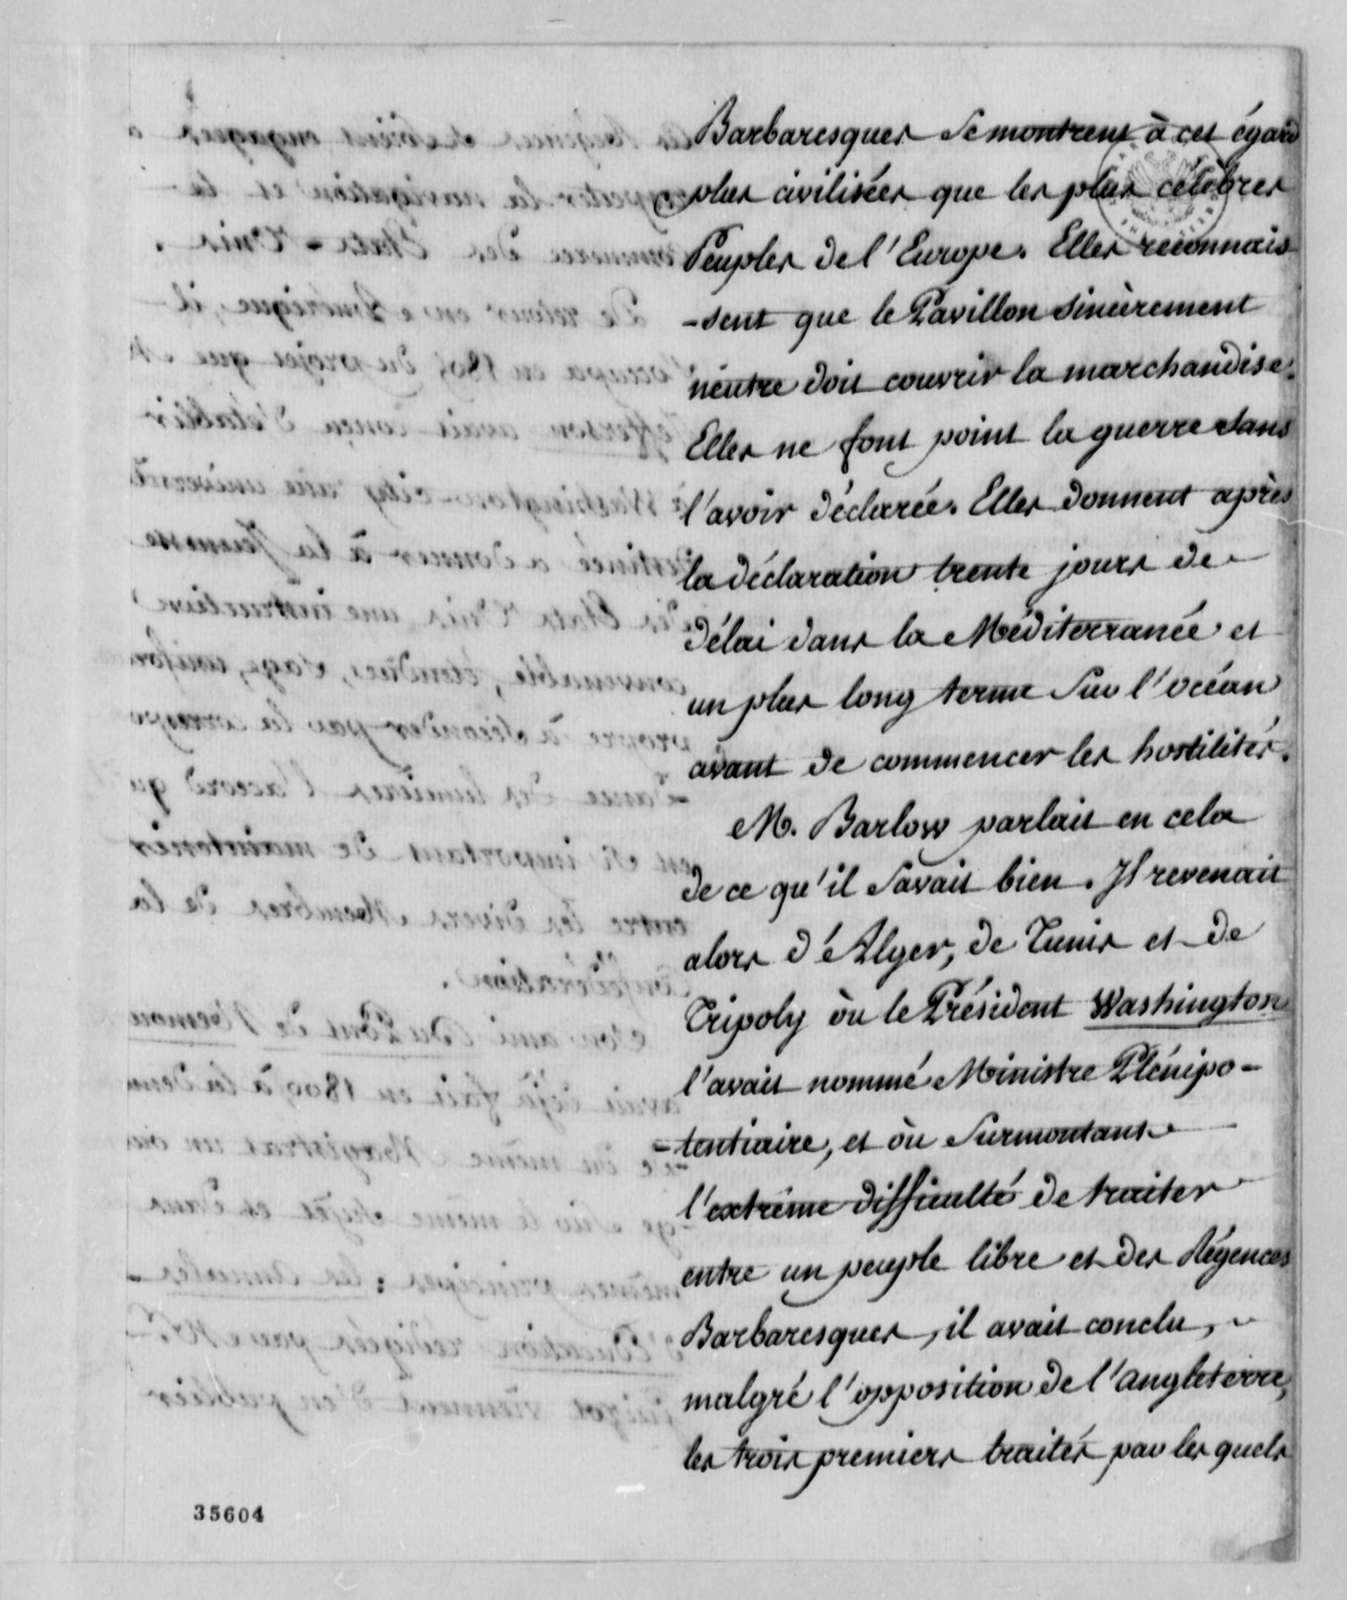 Pierre S. Dupont de Nemours, 1813, Notice on Barlow, in French